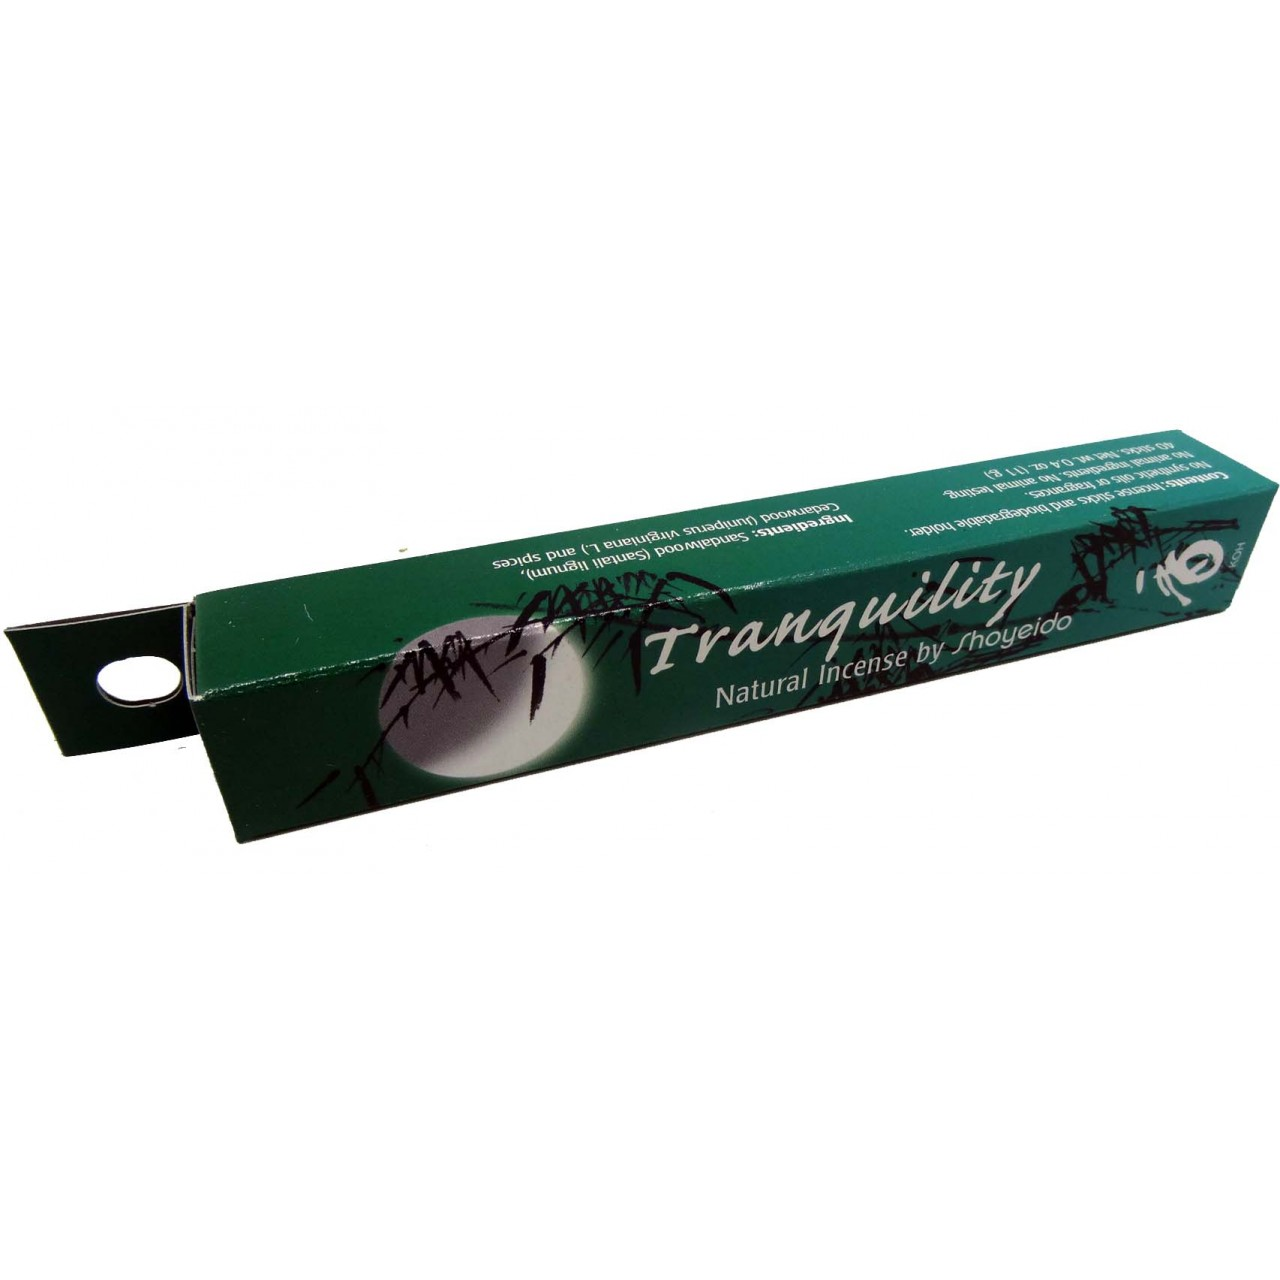 Shoyeido Natural Incense - TRANQUILITY